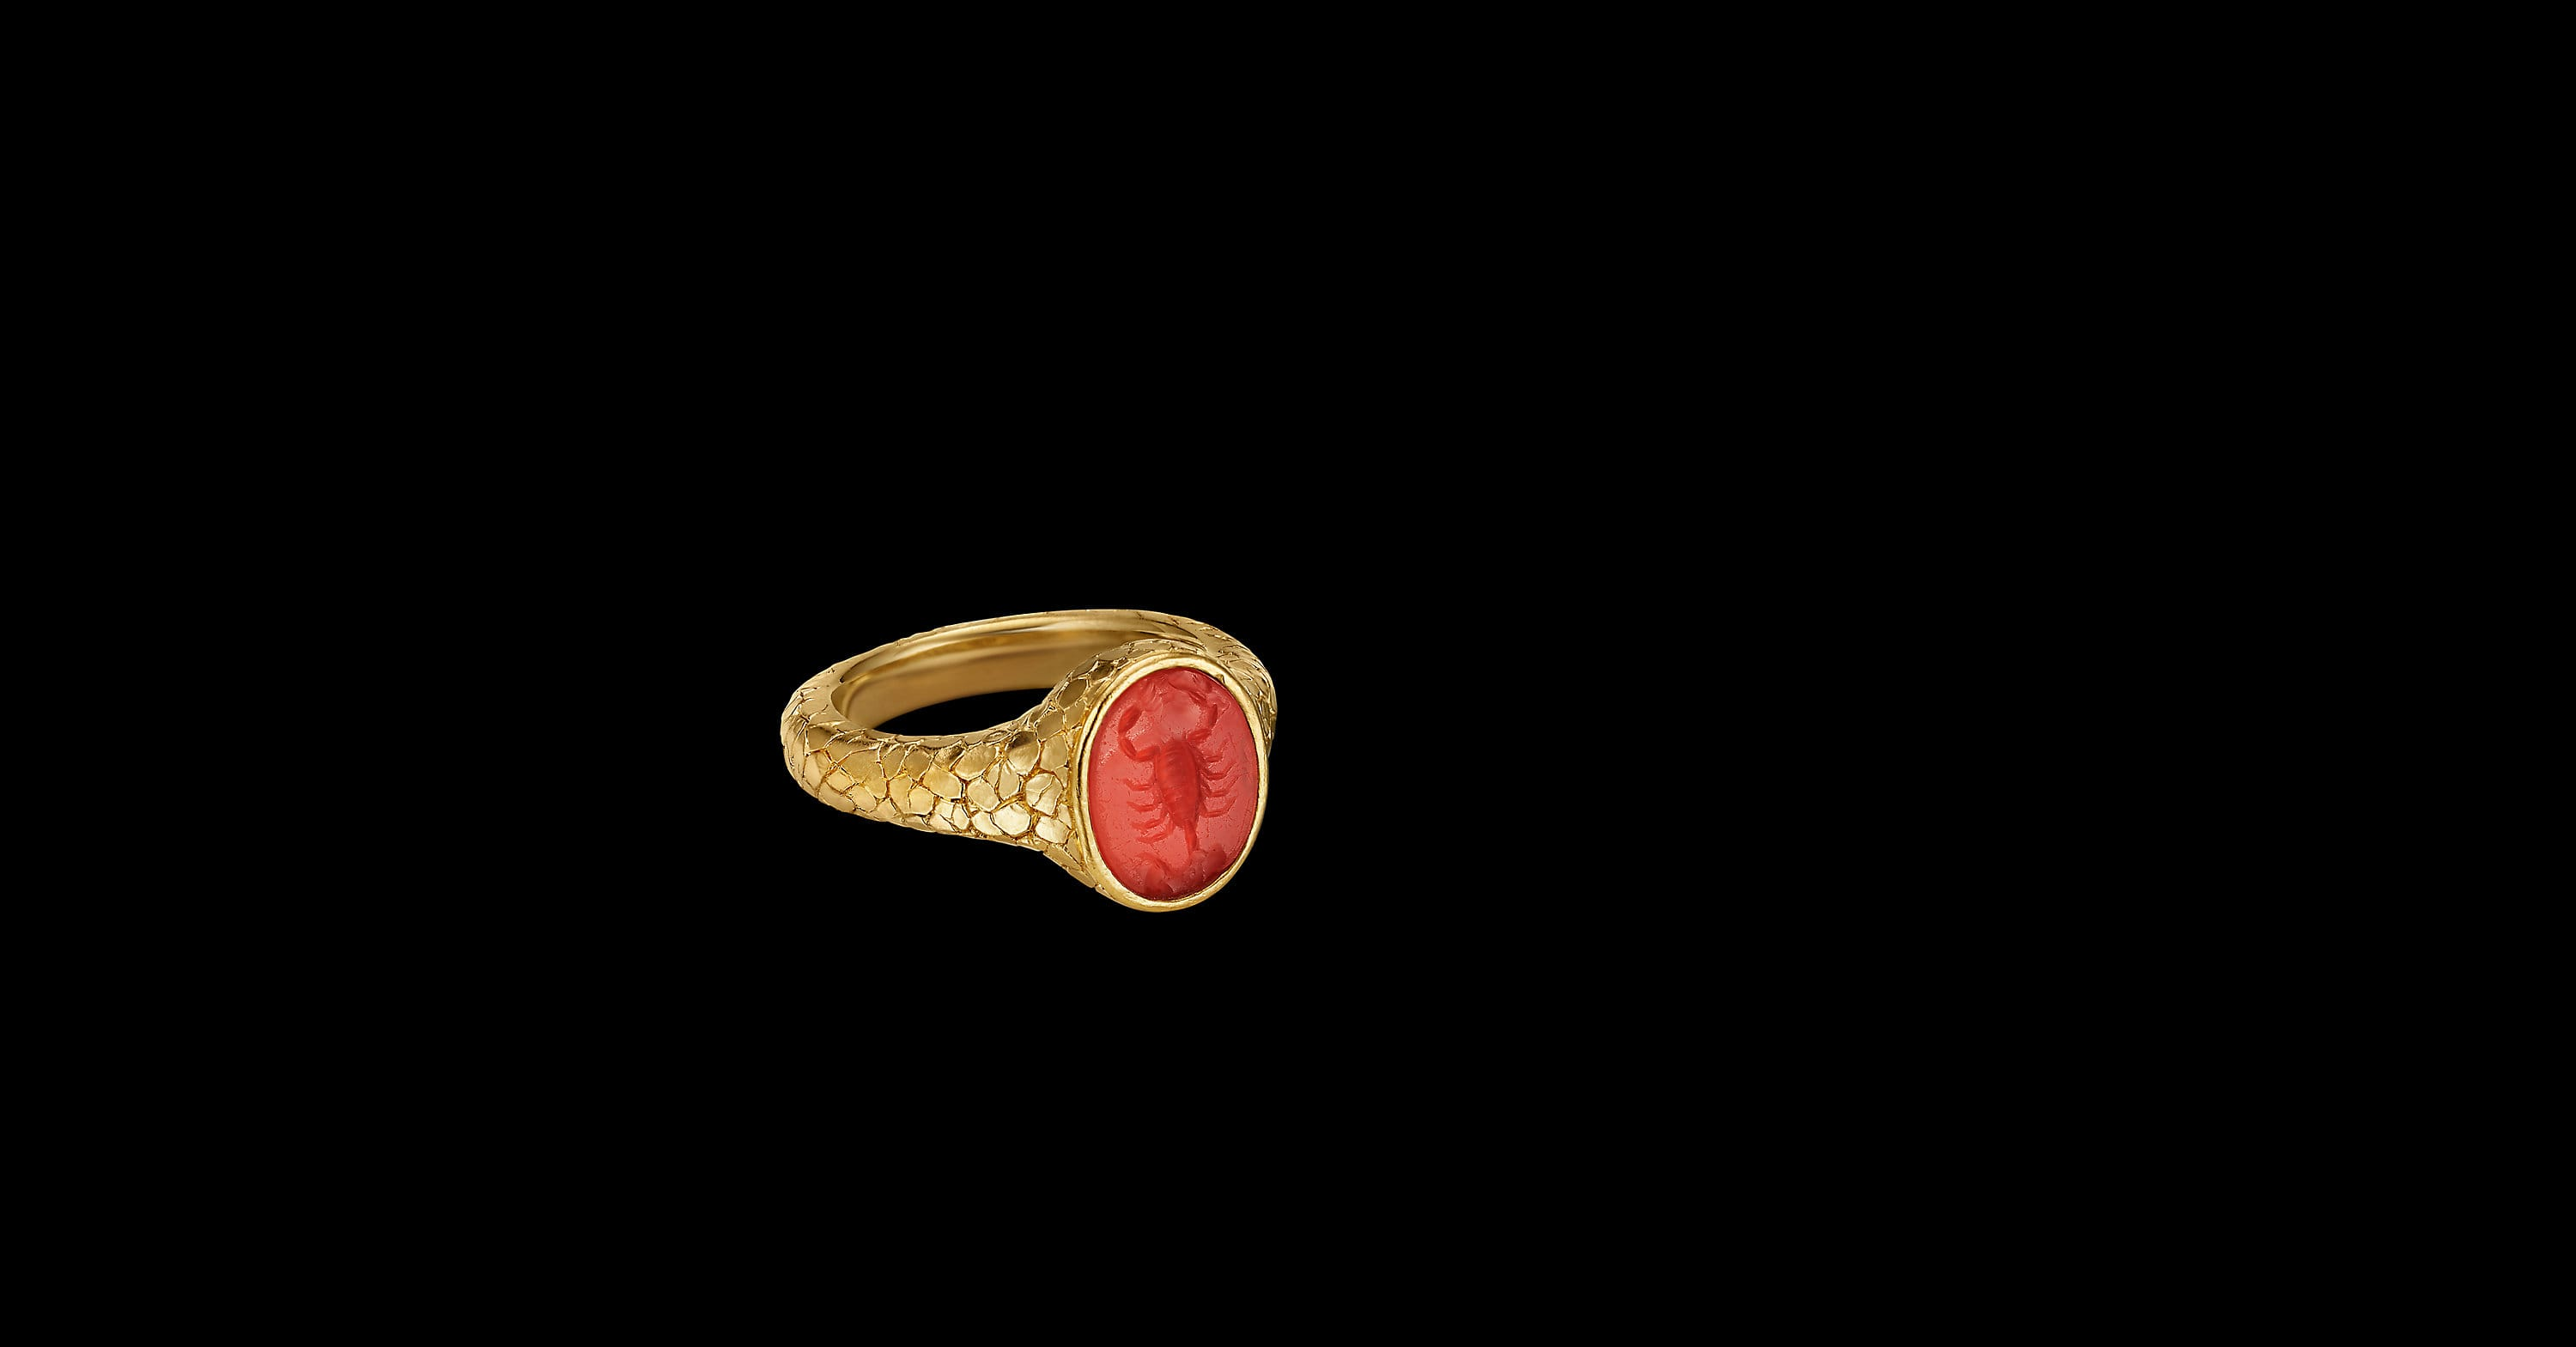 EY Signature Scoprion Intaglio Ring in 22K Yellow Goldwith Carnelian